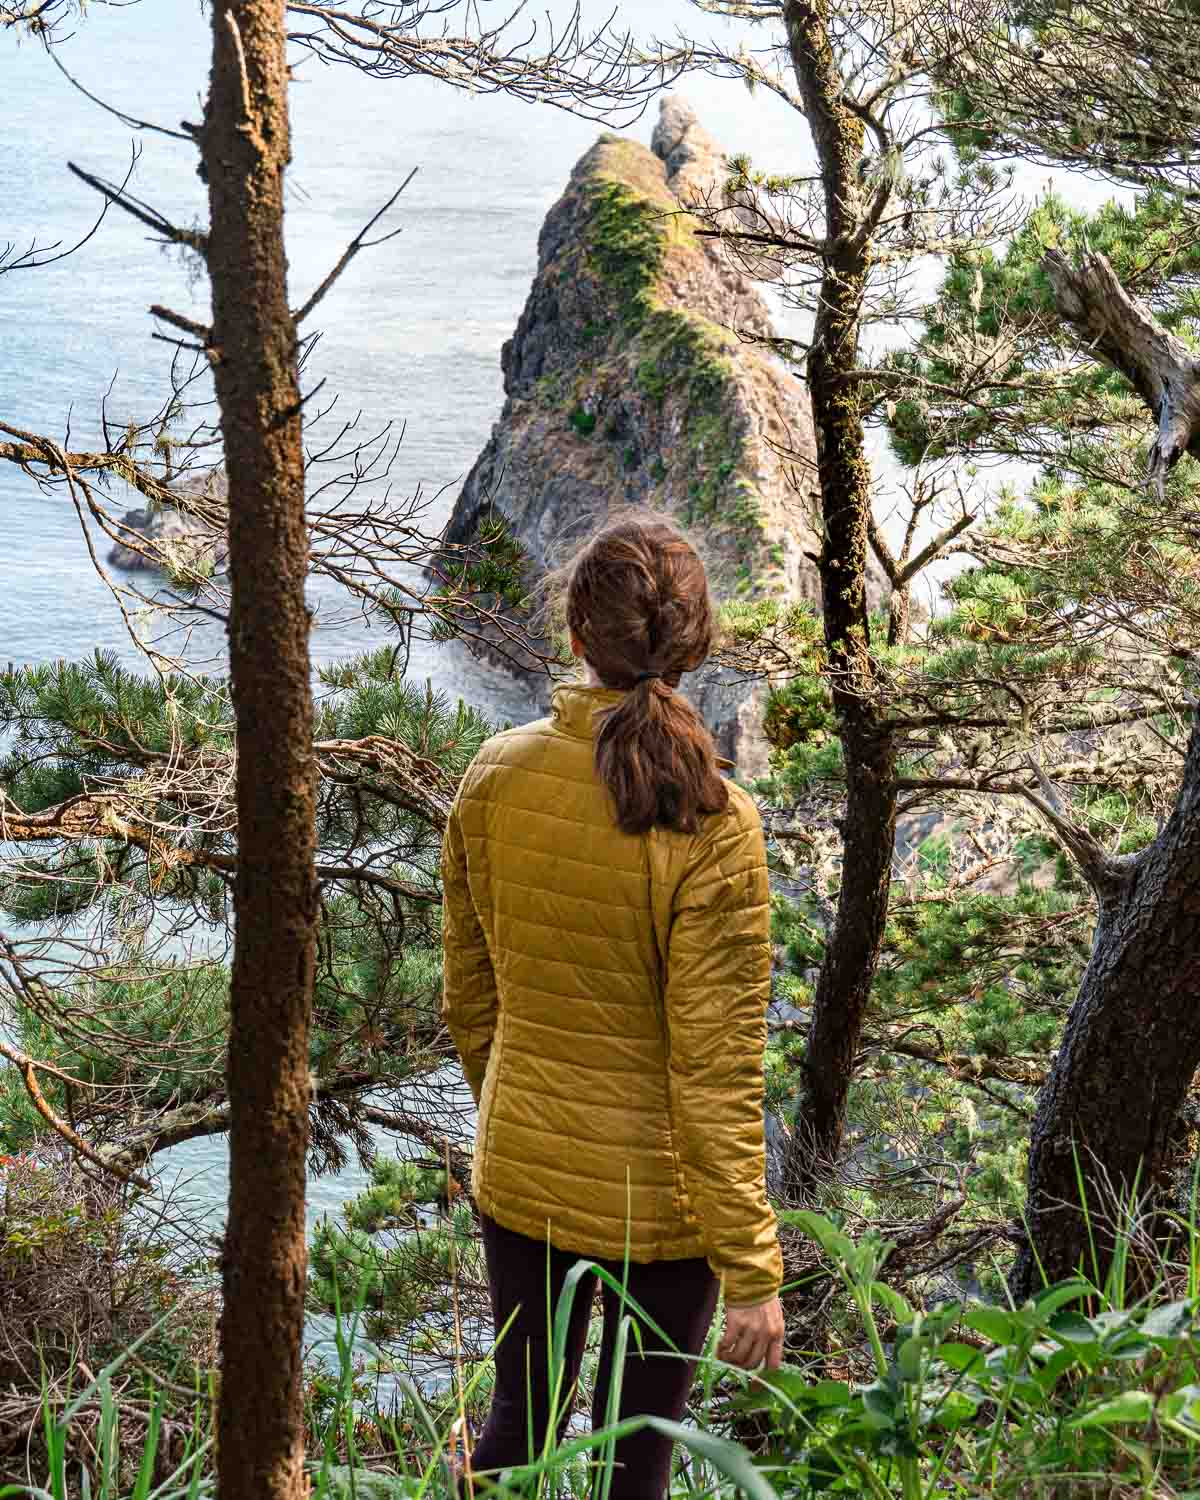 Megan stands among trees and looks out at a rock formation rising from the ocean